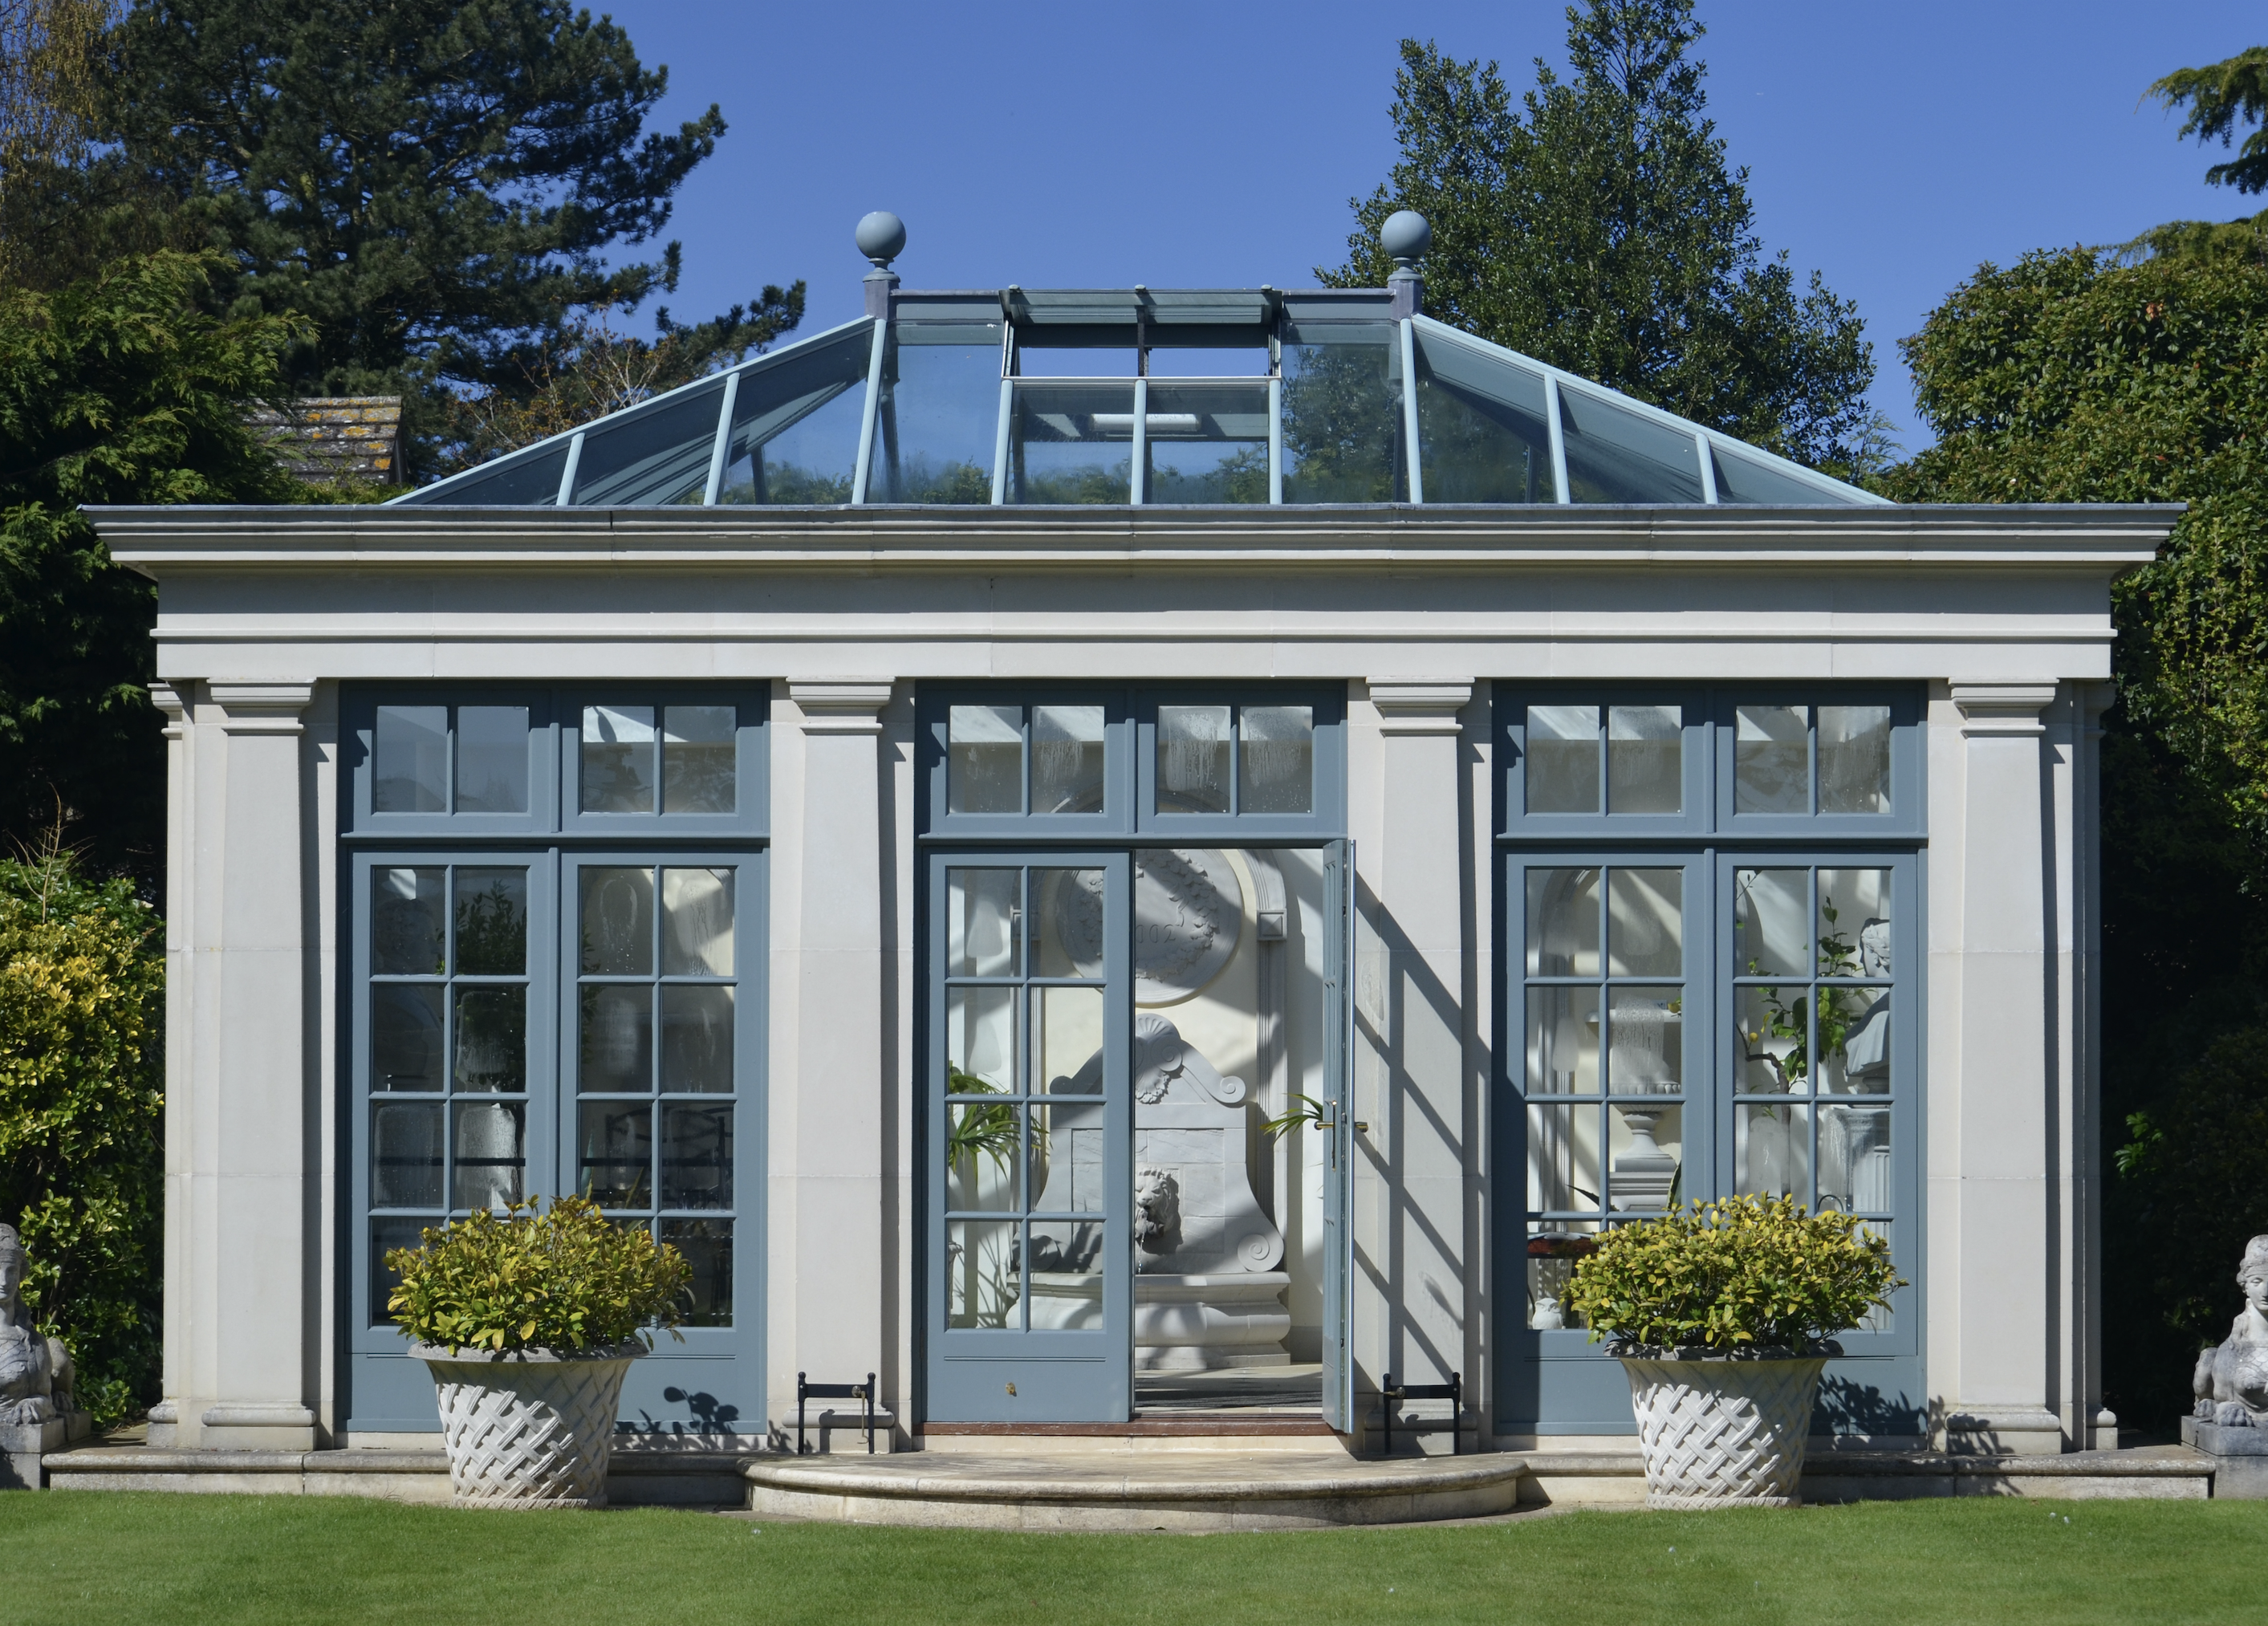 A rather grand orangery built by Haddenstone - an option if you have a v large garden!